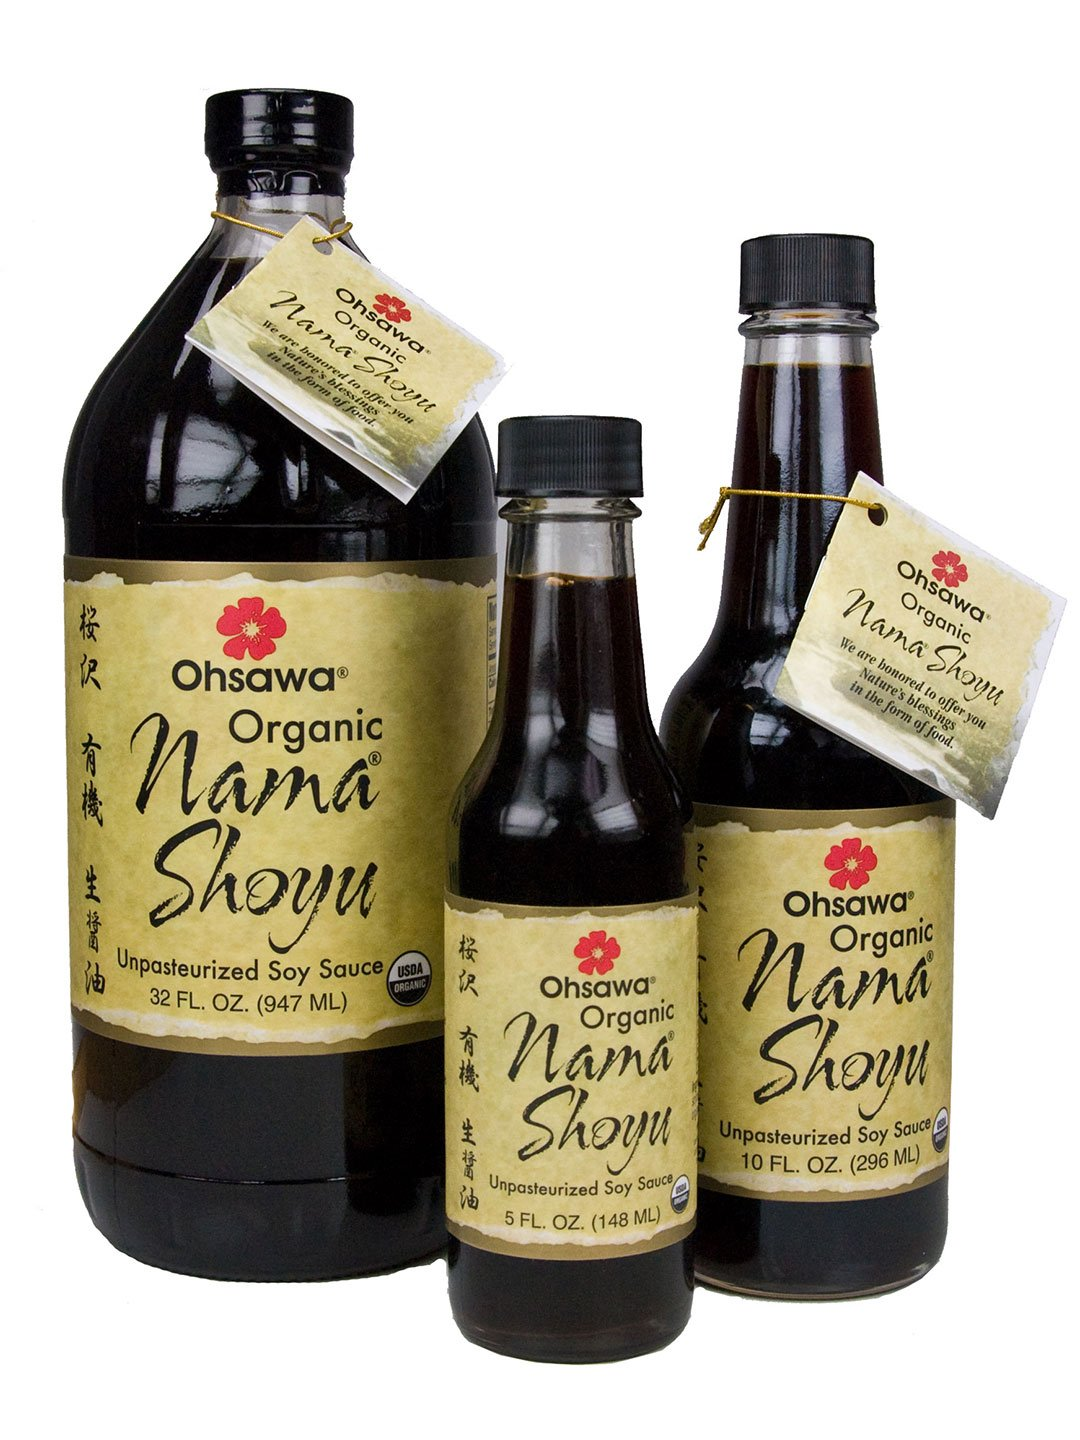 Ohsawa Nama Shoyu, Organic and Aged in 150 Year Cedar Kegs for Extra Flavor - Japanese Soy-Free Sauce, Low - Sodium, Non-GMO, Vegan, Kosher - 32 oz by OHSAWA® (Image #5)